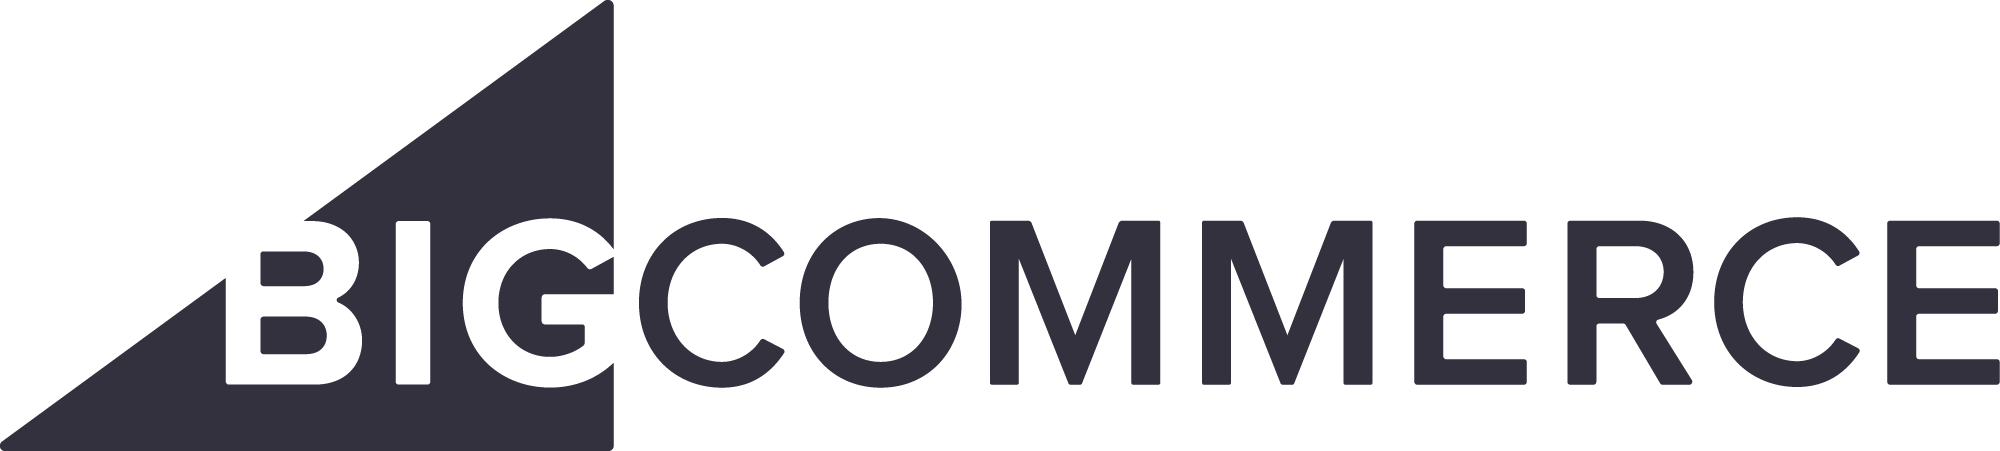 BigCommerce-logo-dark-1